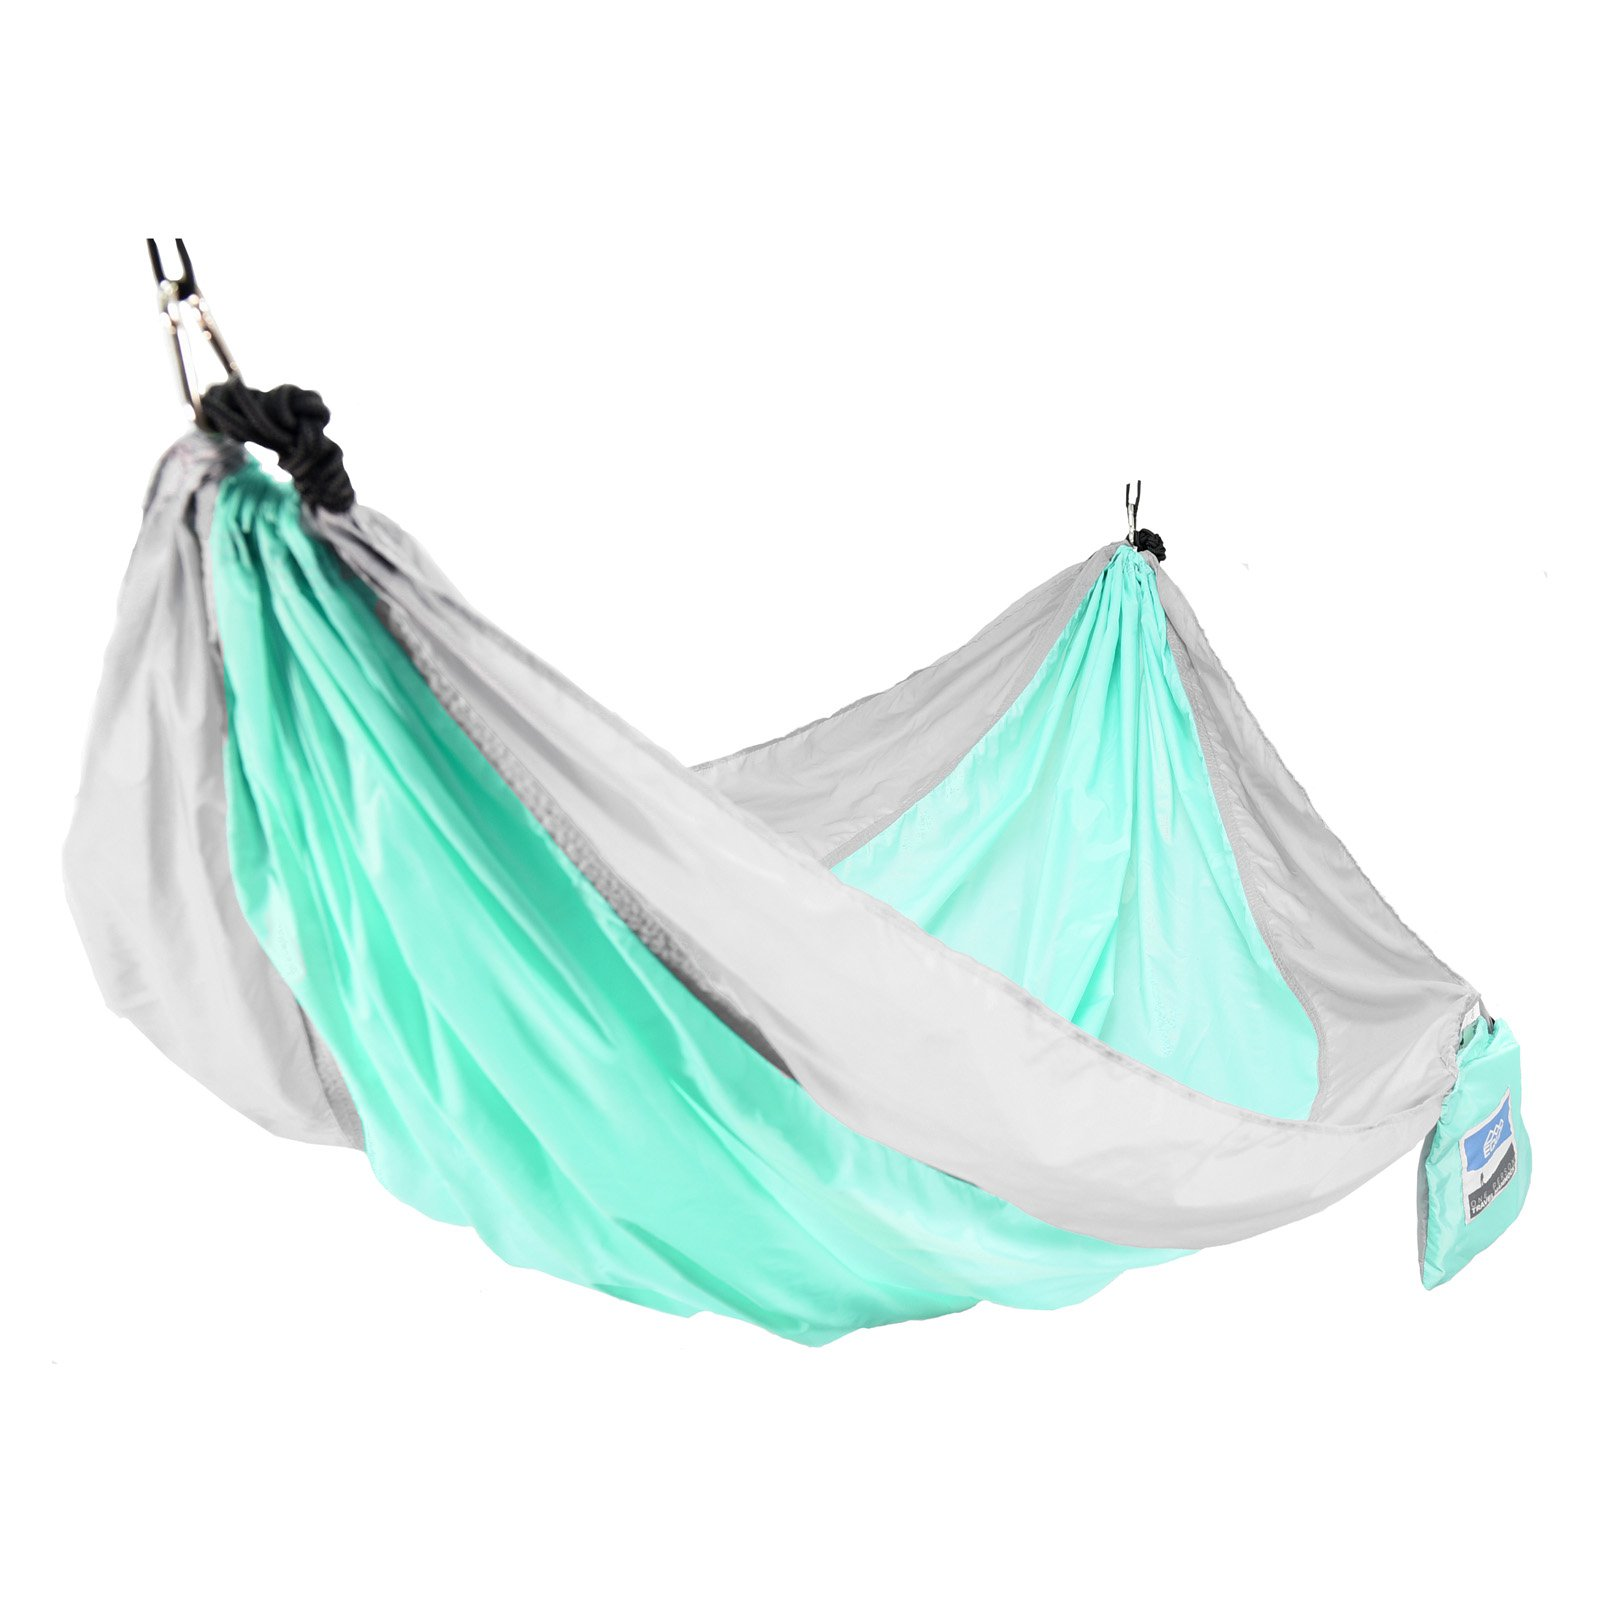 Equip 1-Person Durable Nylon Portable Hammock for Camping, Hiking, Backpacking, Travel, Includes Hanging Kit, Grey Mint by Denovo